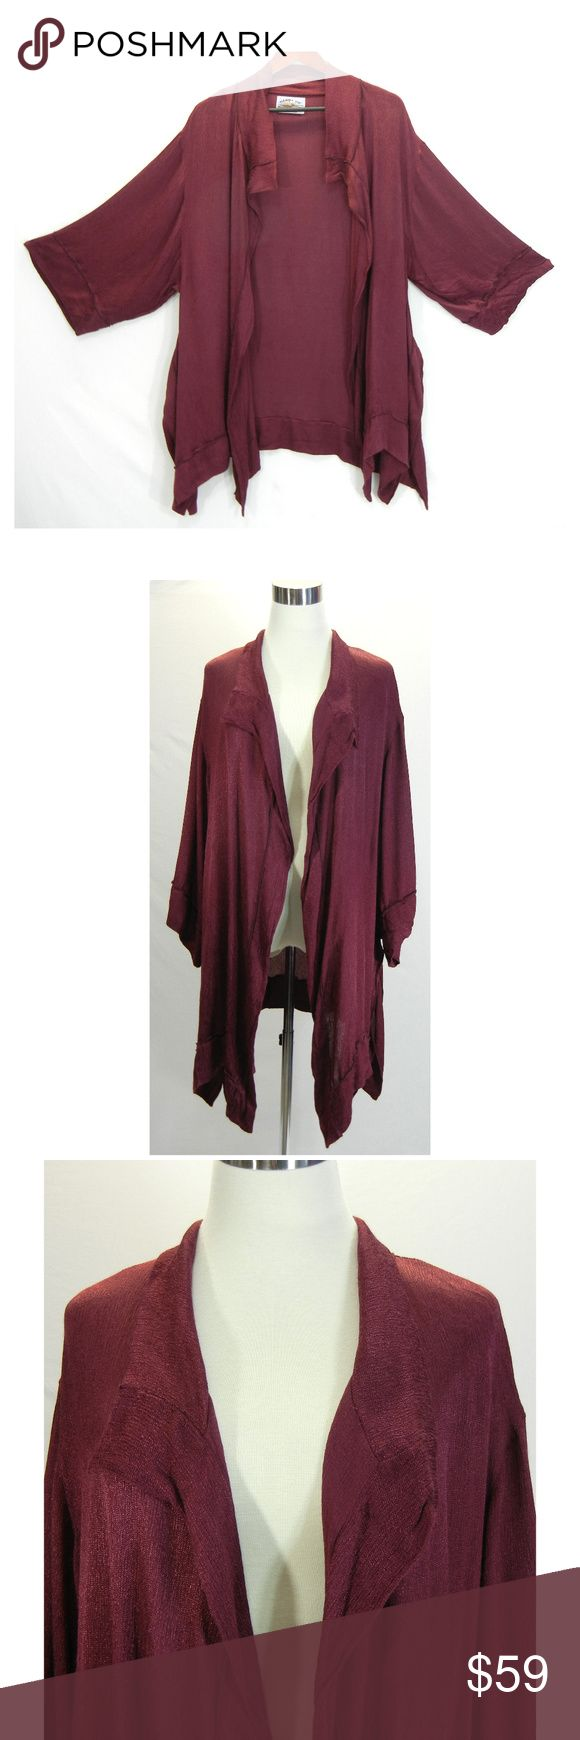 """TIENDA HO Long Jacket OpenFront Boho Asymmetrical Open front jacket by Tienda Ho  Maroon Red Wide sleeves Shiny rayon material Reverse seam detail trim Asymmetrical hem, long side vents 100% rayon Hand wash / Dry clean Tagged size: OS One Size  according to Tienda Ho one sizing fit small to plus sizes Excellent condition, no flaws Please check measurements to determine fit  All measurements are given in full Chest  40"""" Waist  52"""" Hips  54""""  Length  32"""" &  34"""" Tienda Ho Jackets & Coats"""